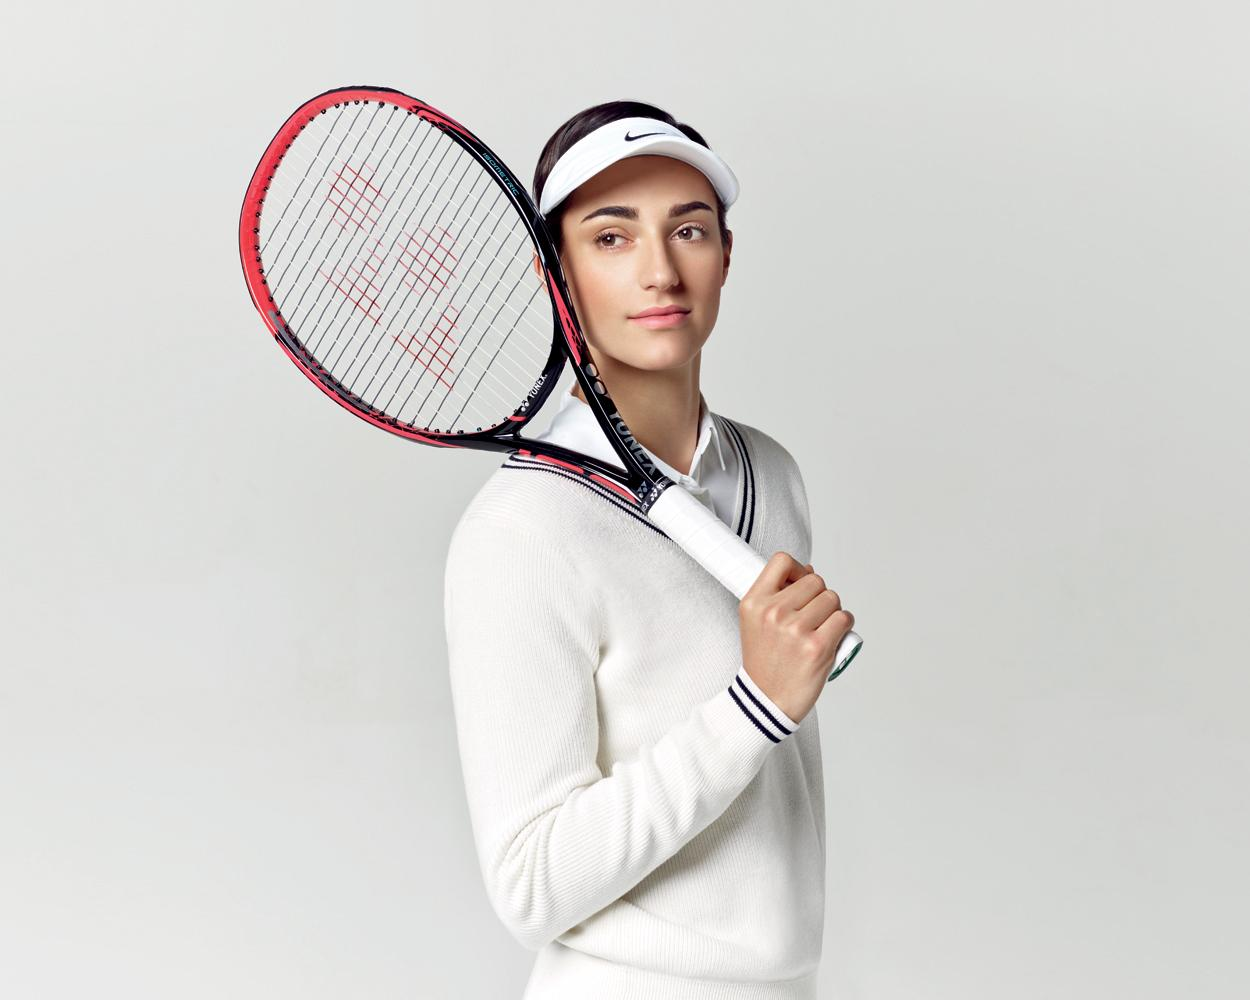 Pro-tennis player Caroline Garcia has been named as Sothys brand ambassador for its Athletics line